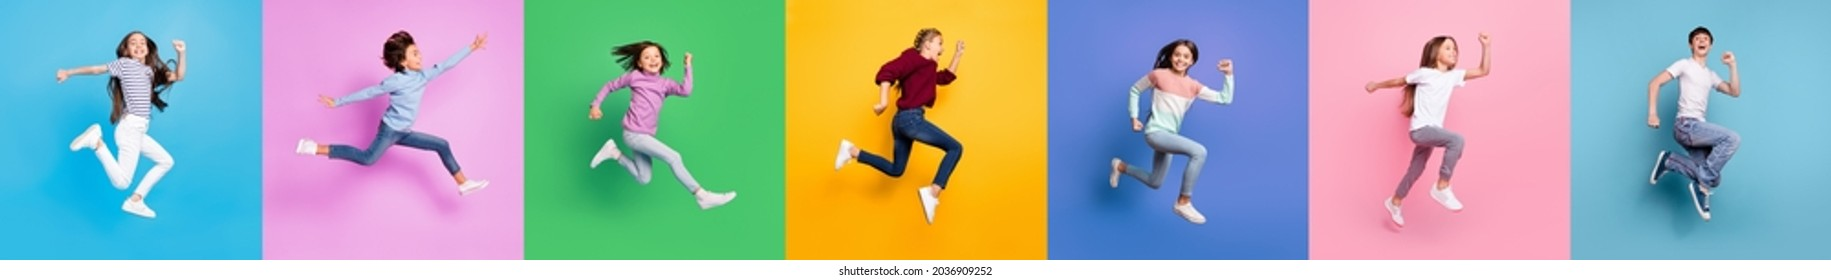 Collage montage photo of different race fun crazy kids boys girls jump run fast isolated over colored background - Shutterstock ID 2036909252